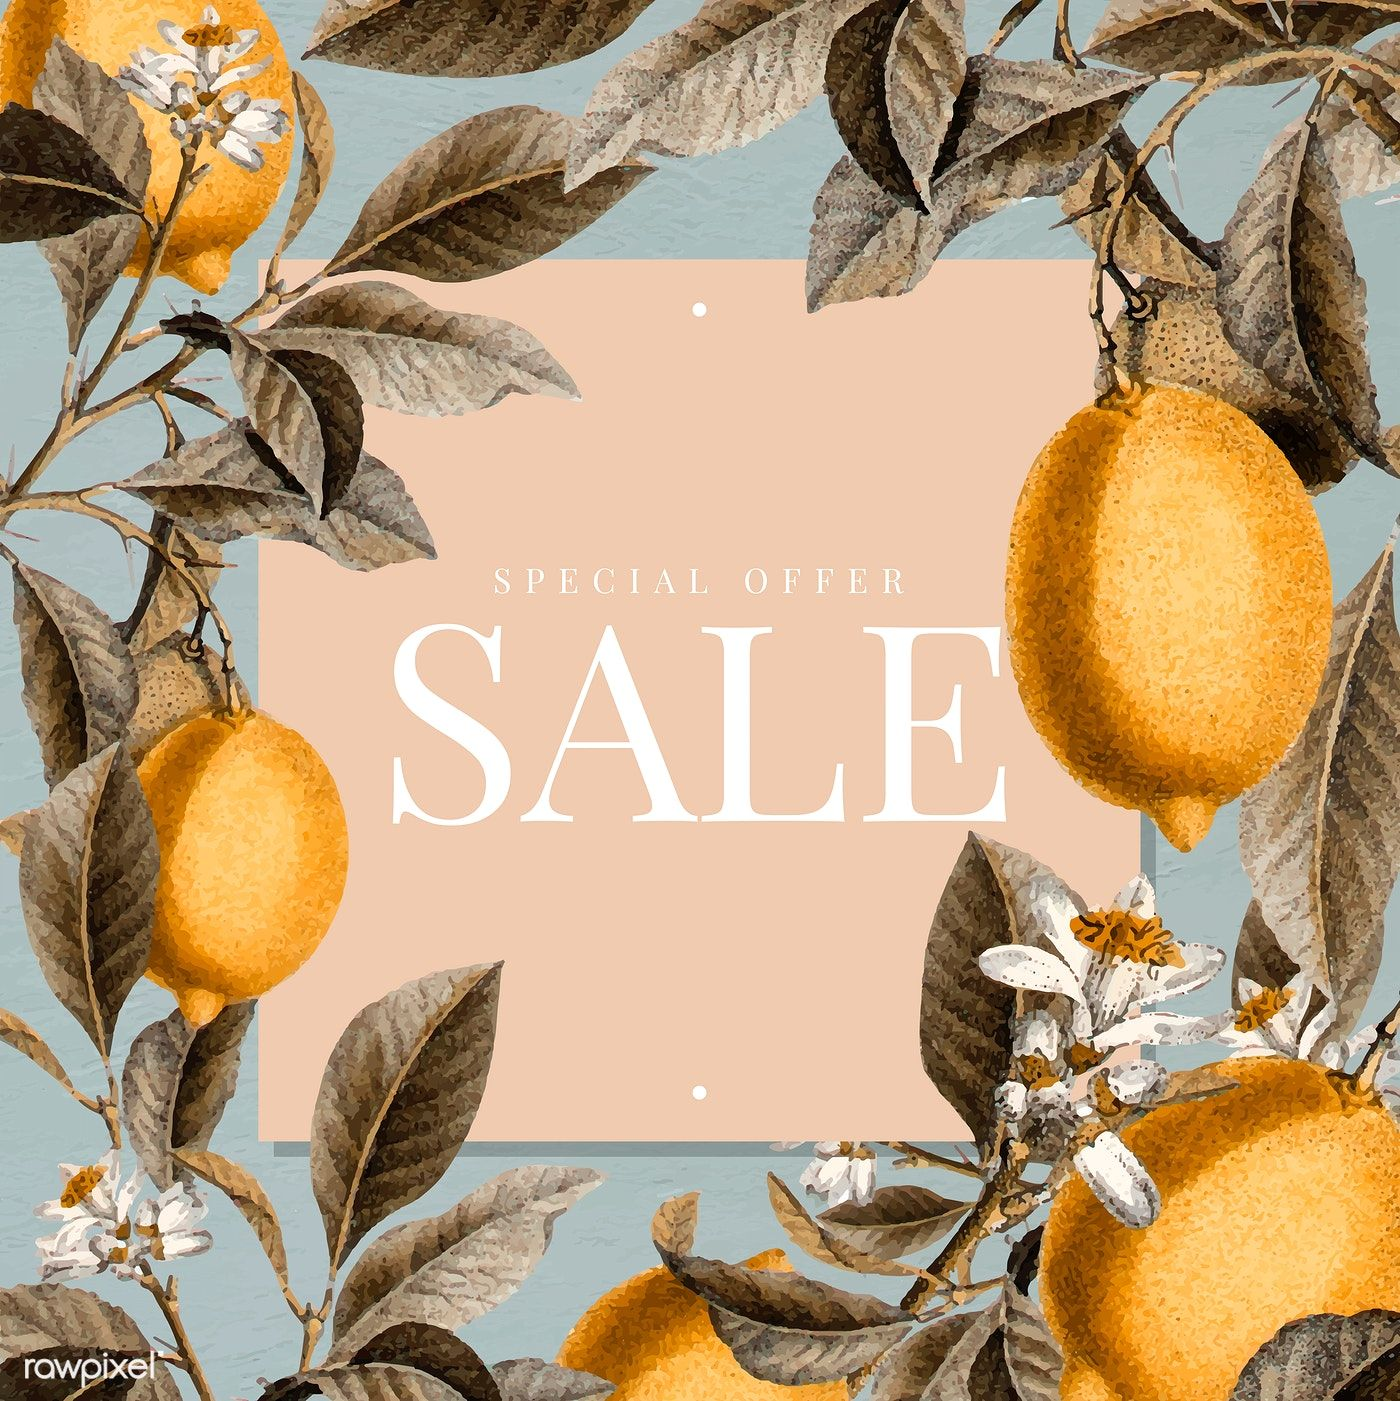 Download premium vector of Tropical sale sign with lemons